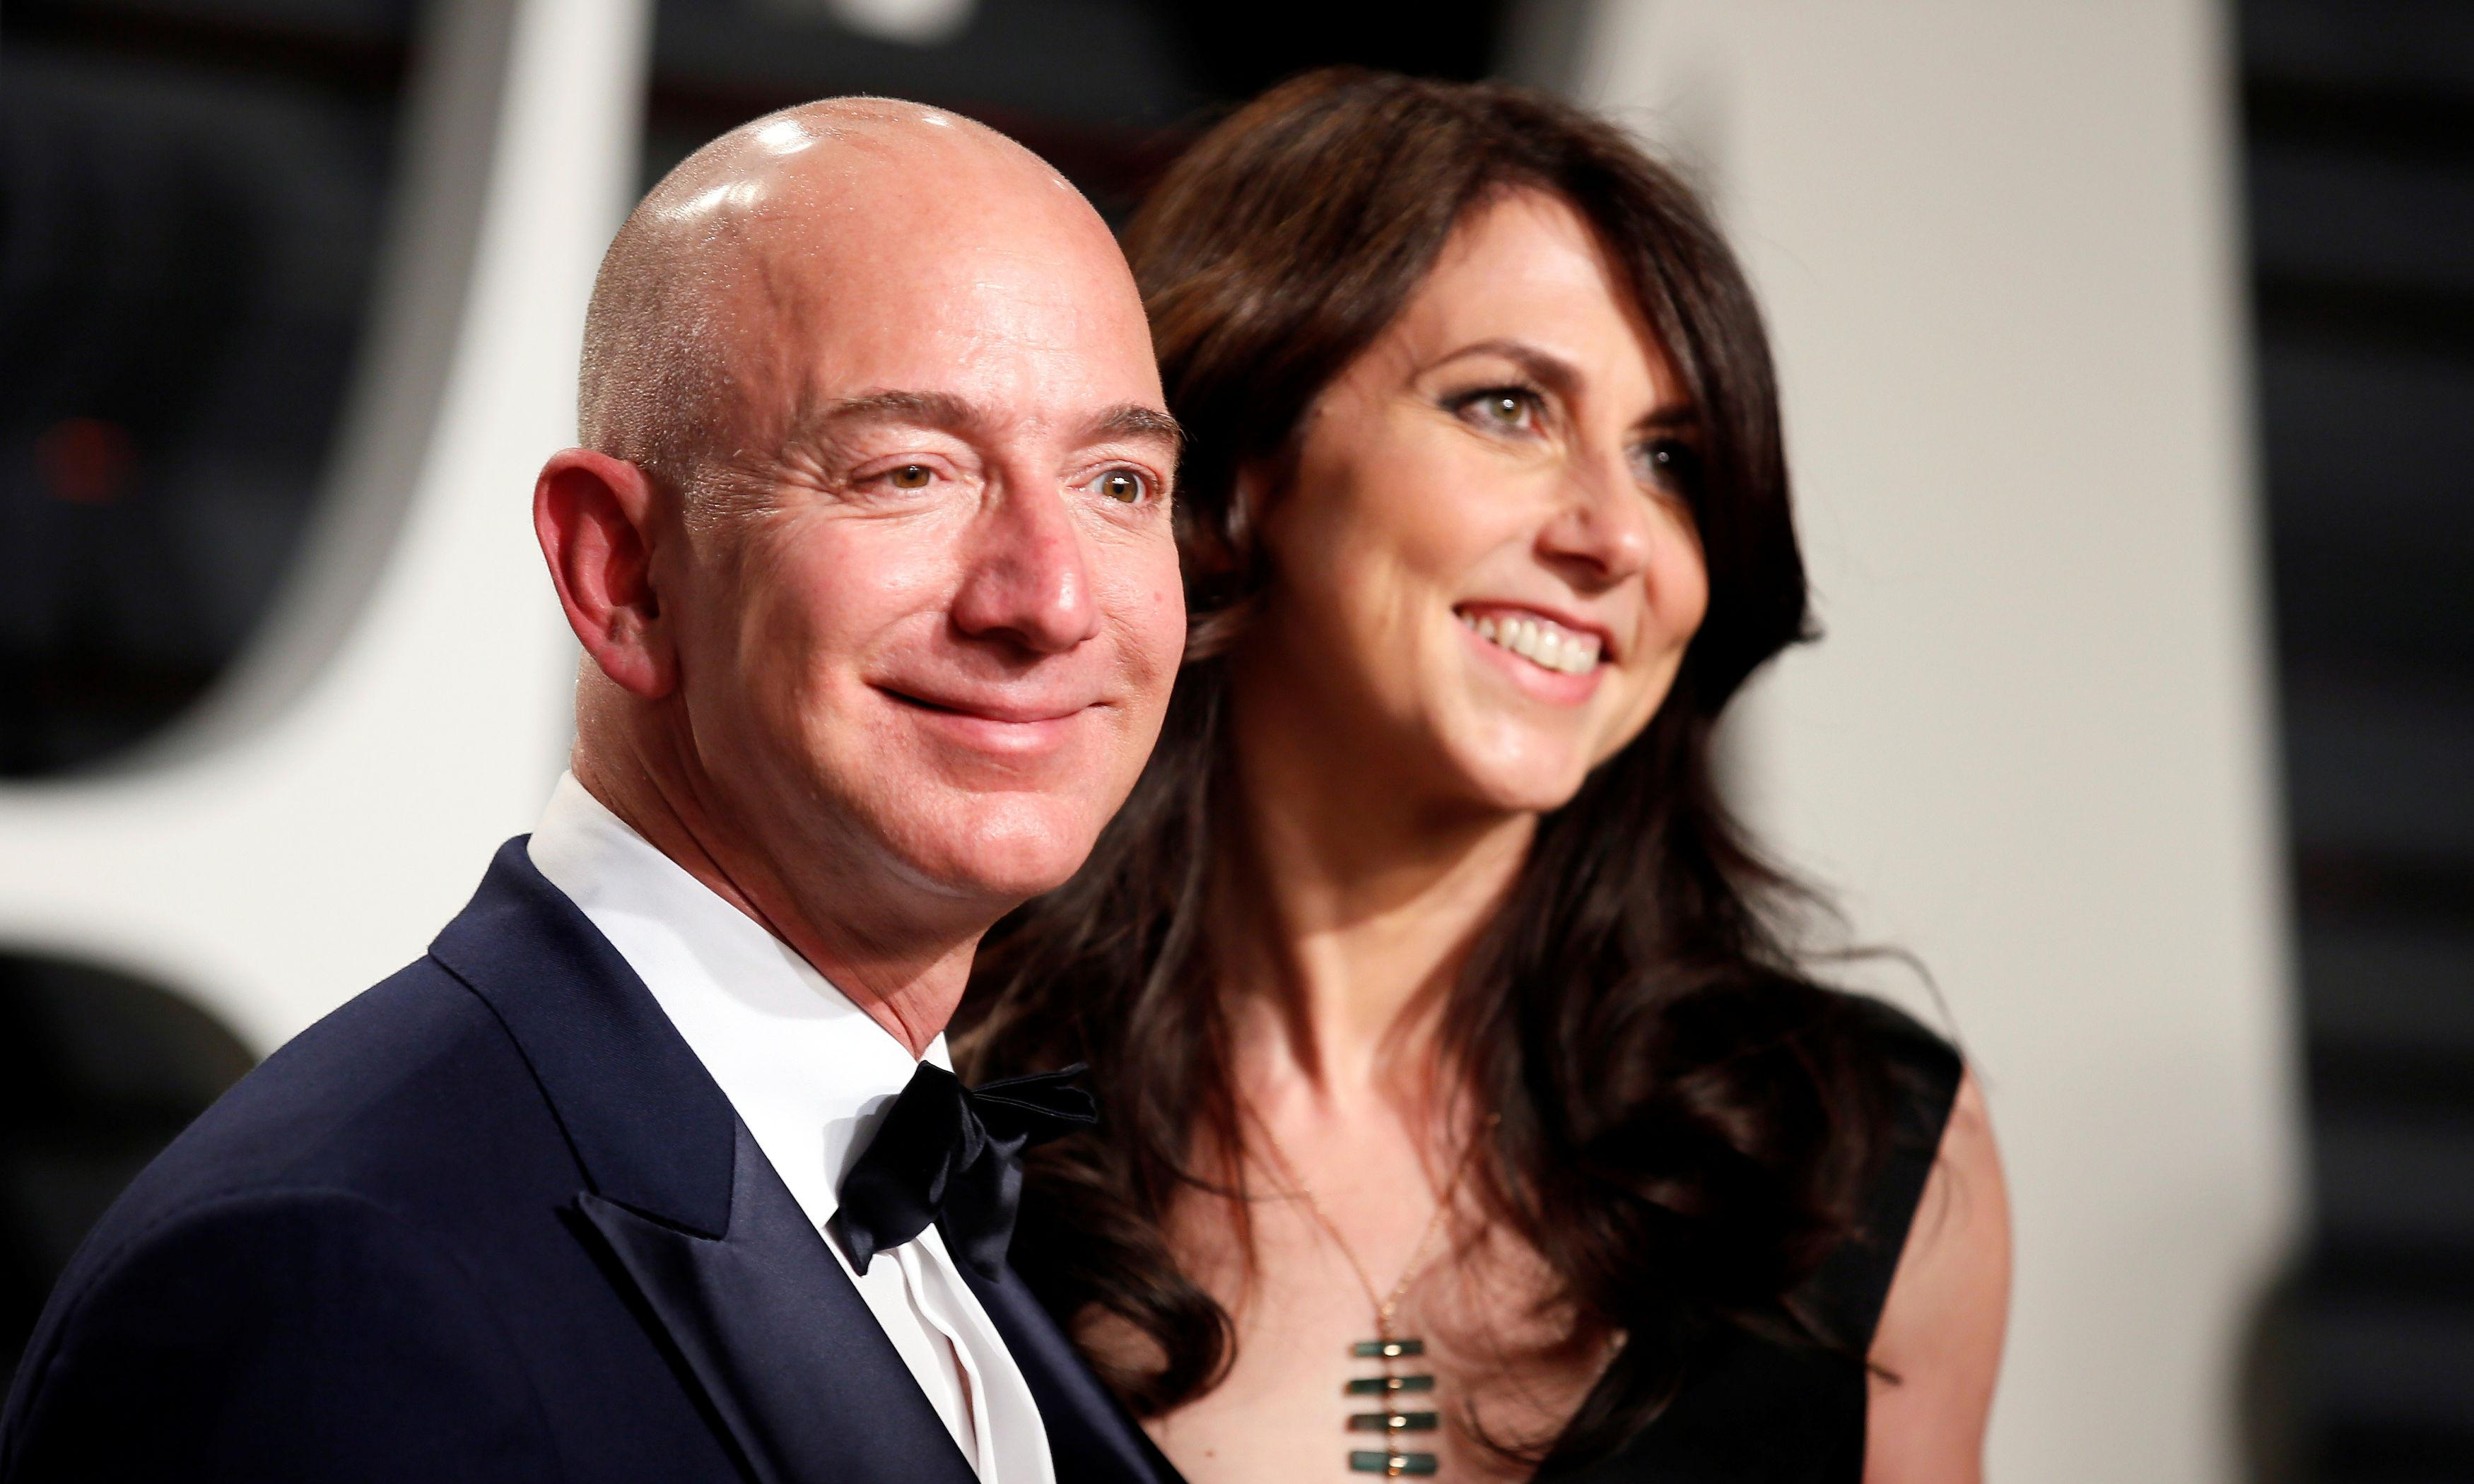 Even Amazon and the tech giants could fail to click in a changing market